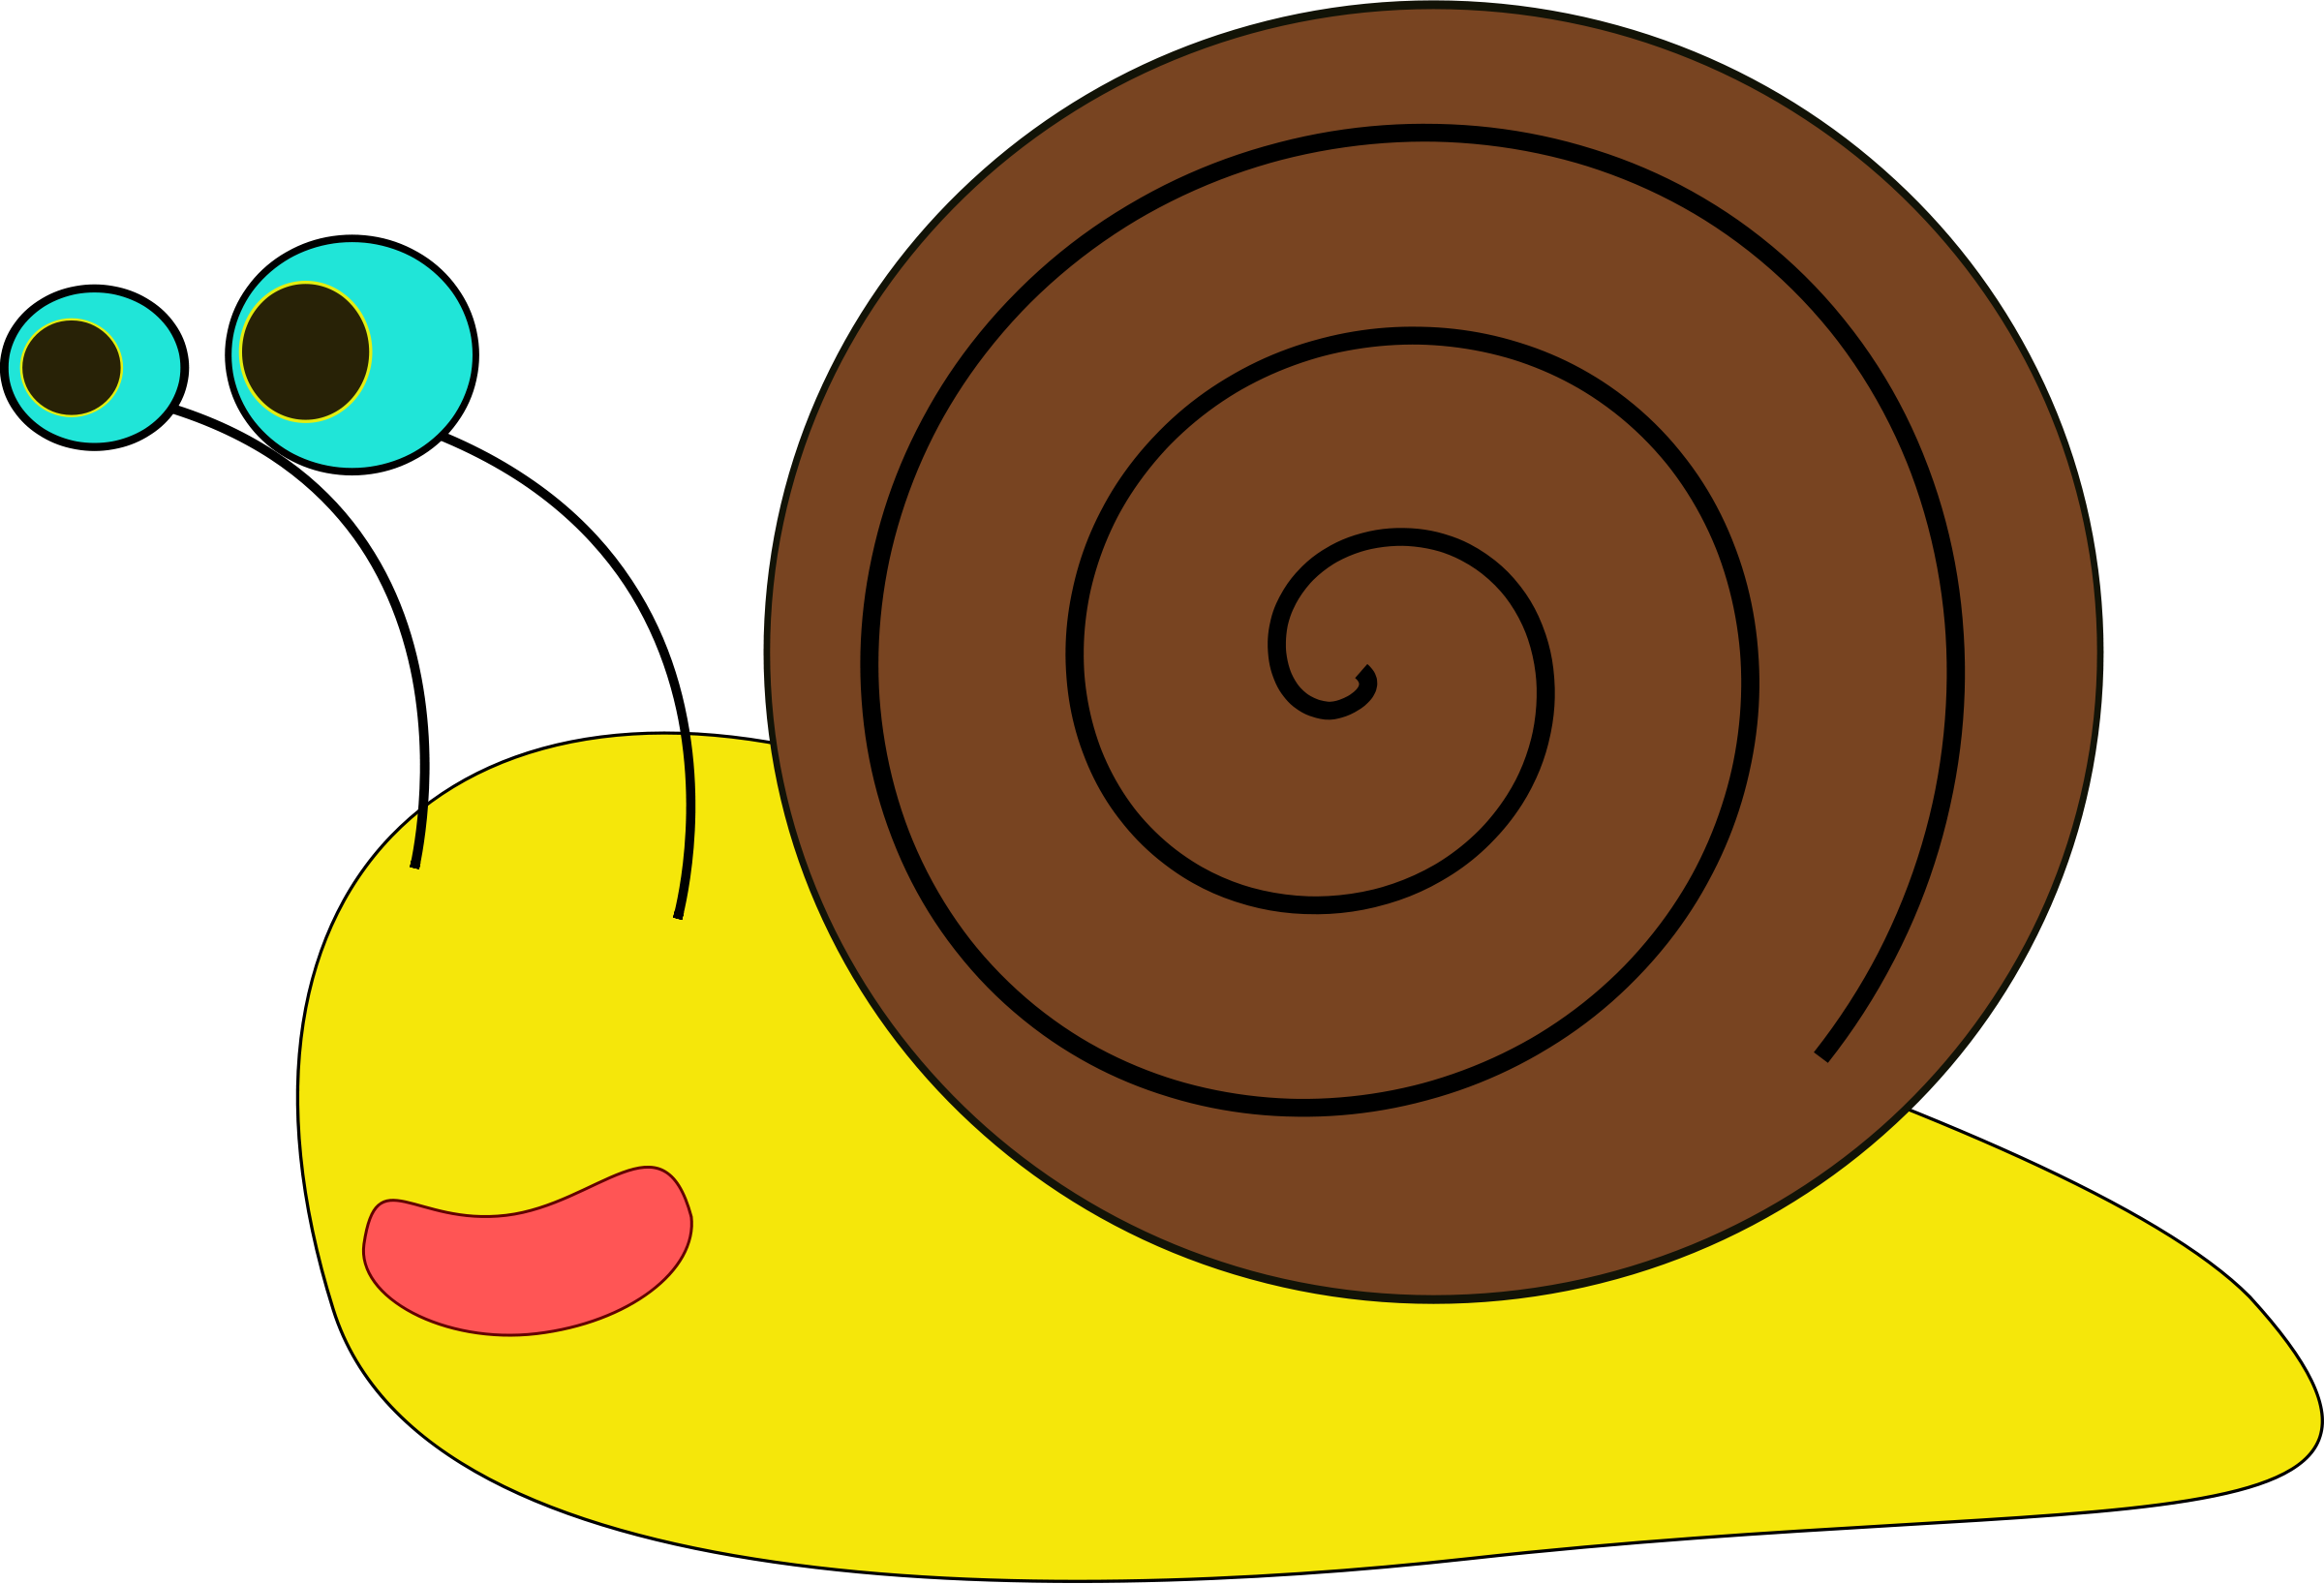 Red clipart snail #6